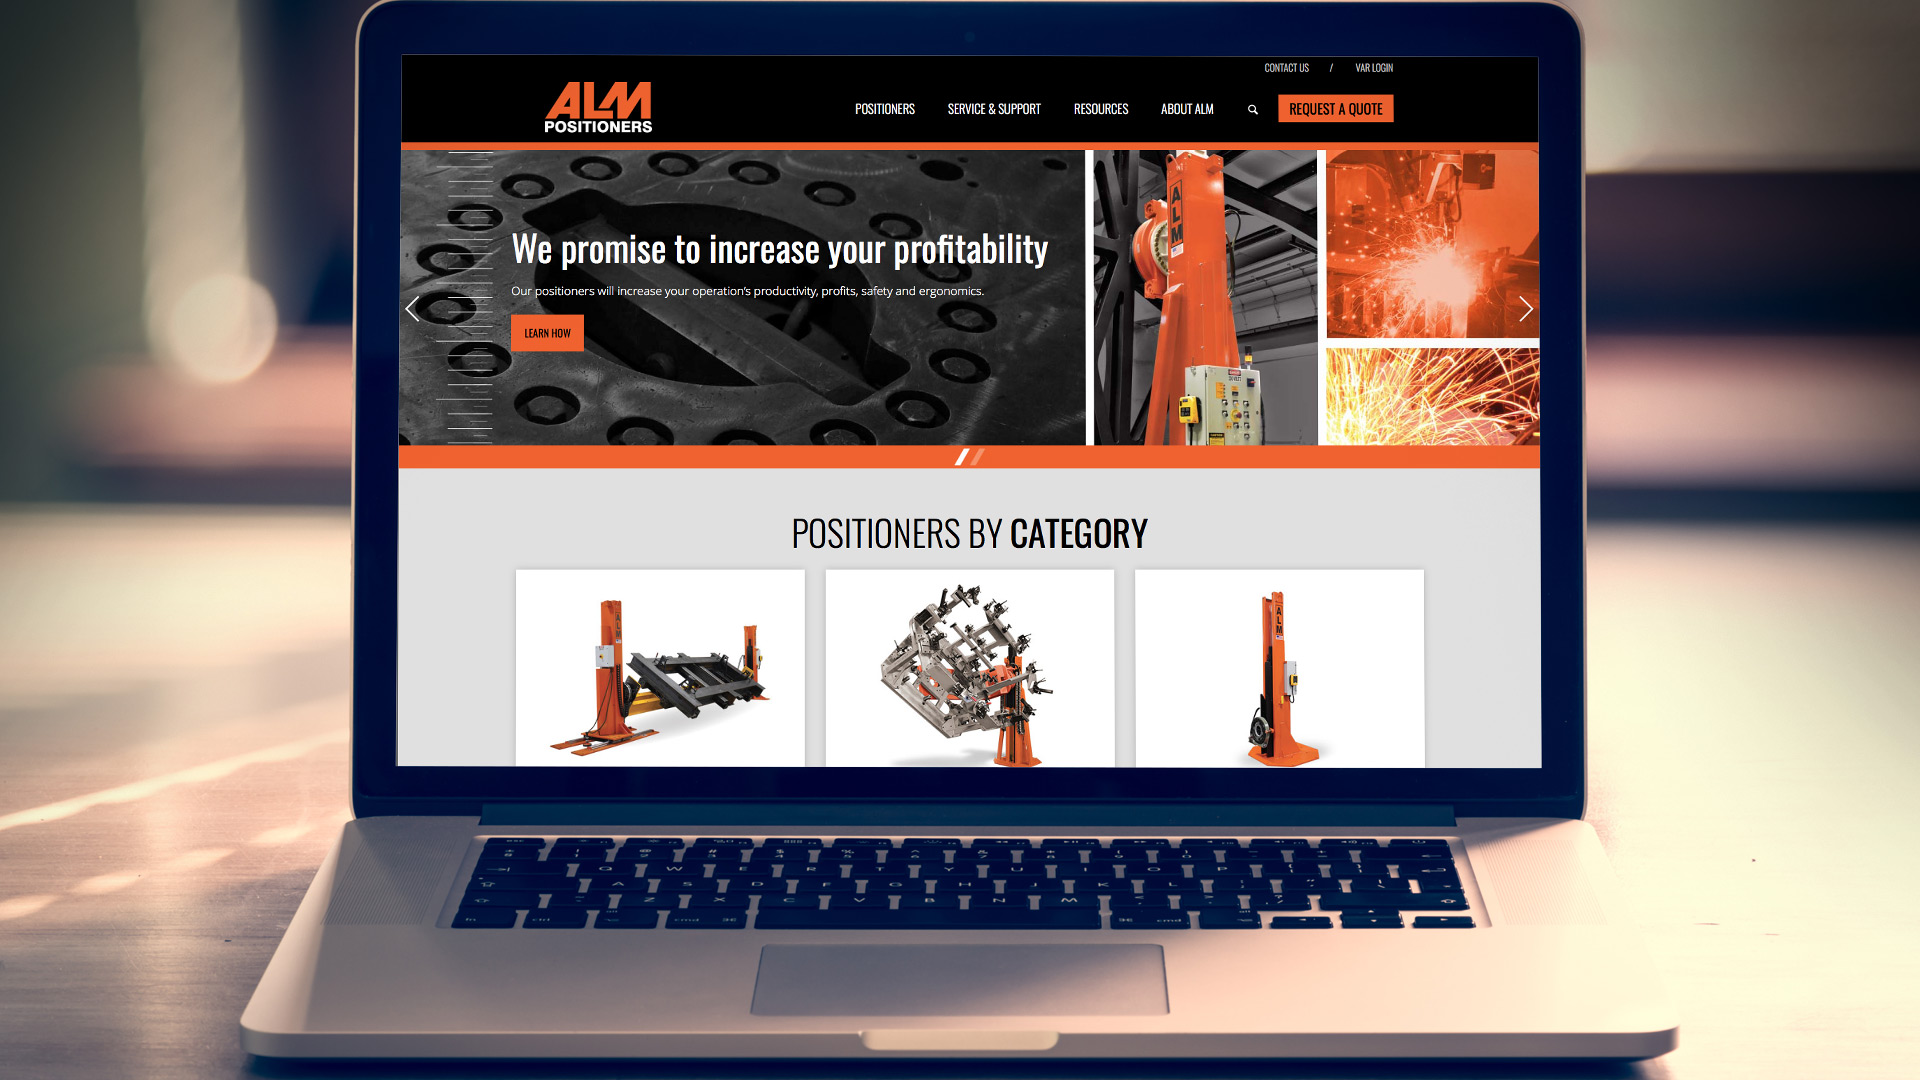 ALM website shown on laptop